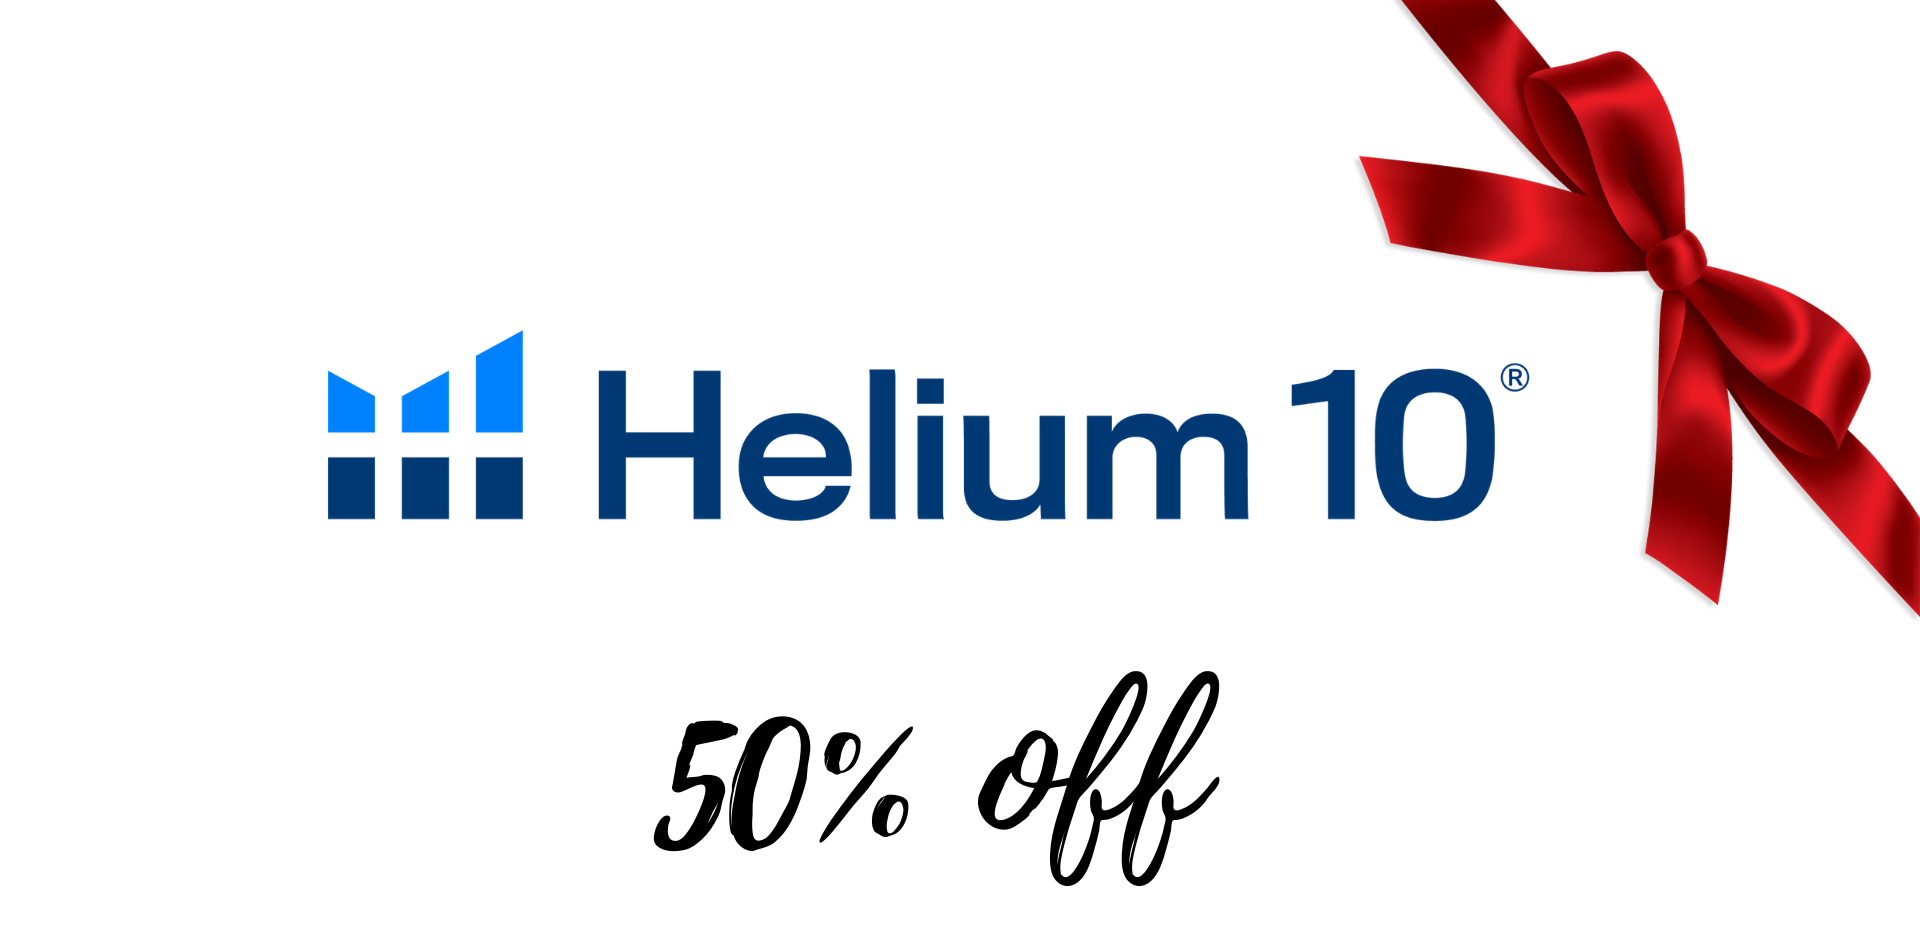 Is Helium 10 Chrome Extension Free